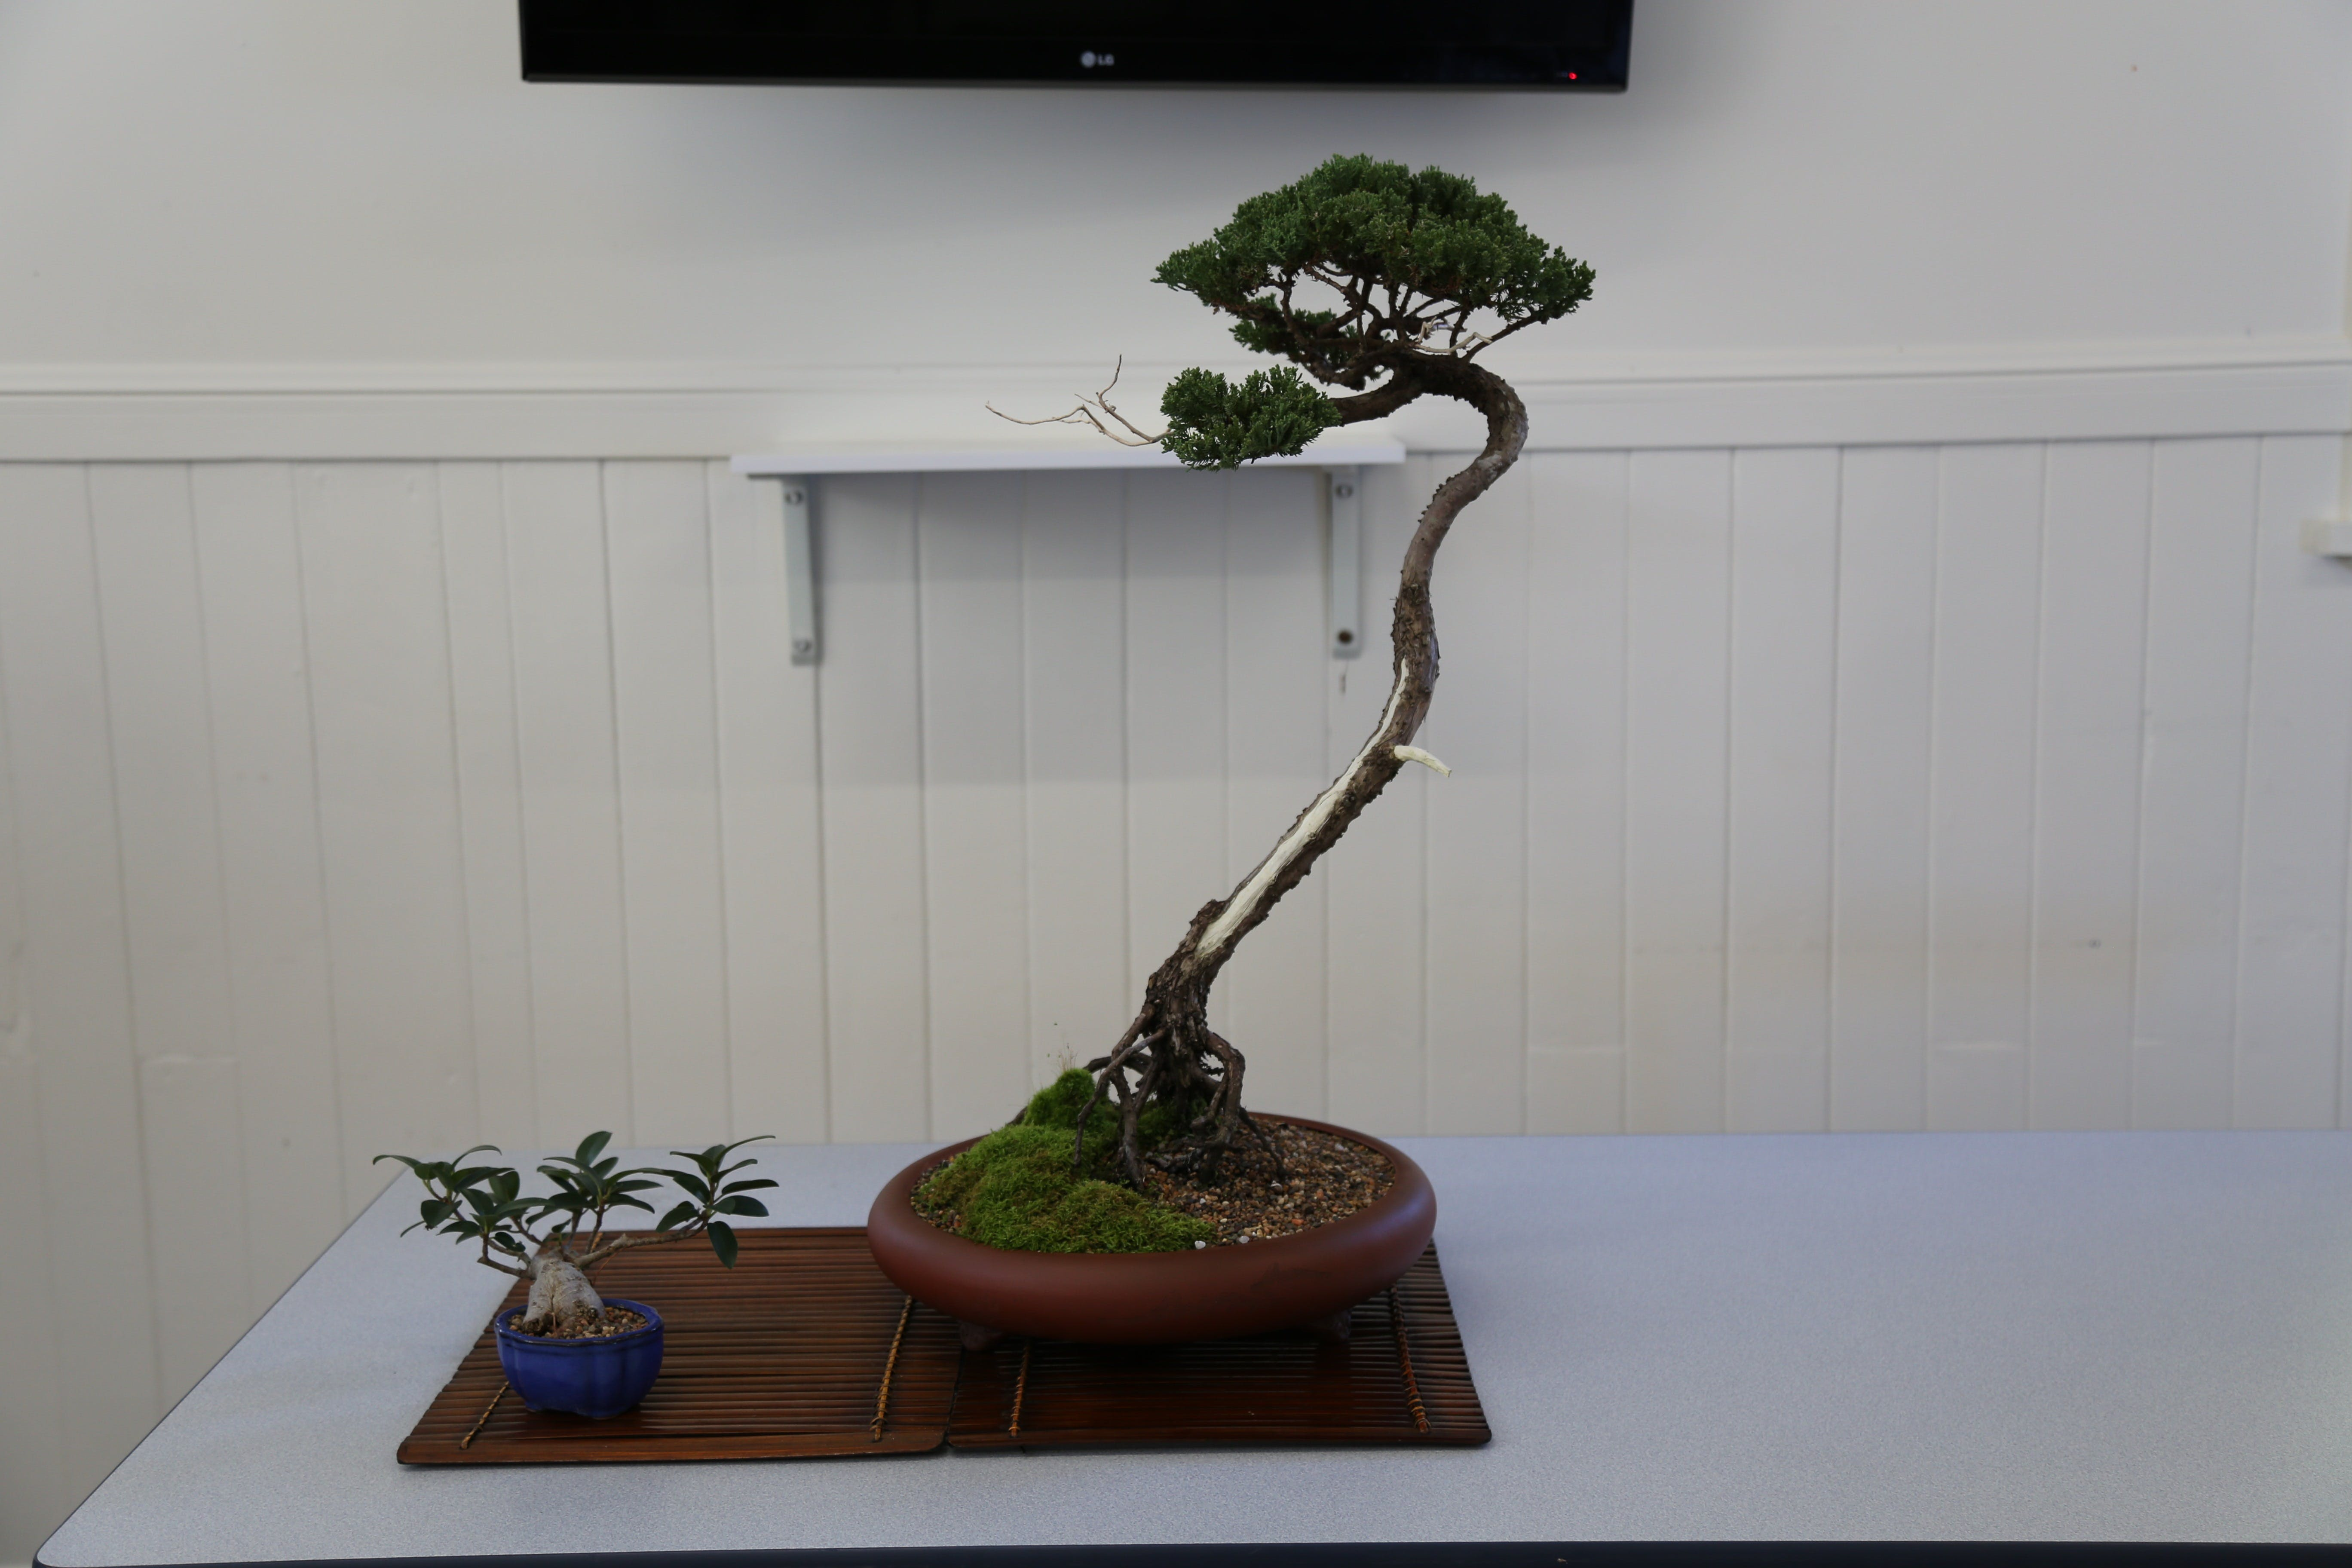 Wauchope Bonsai Workshop Group - Pubs and Clubs